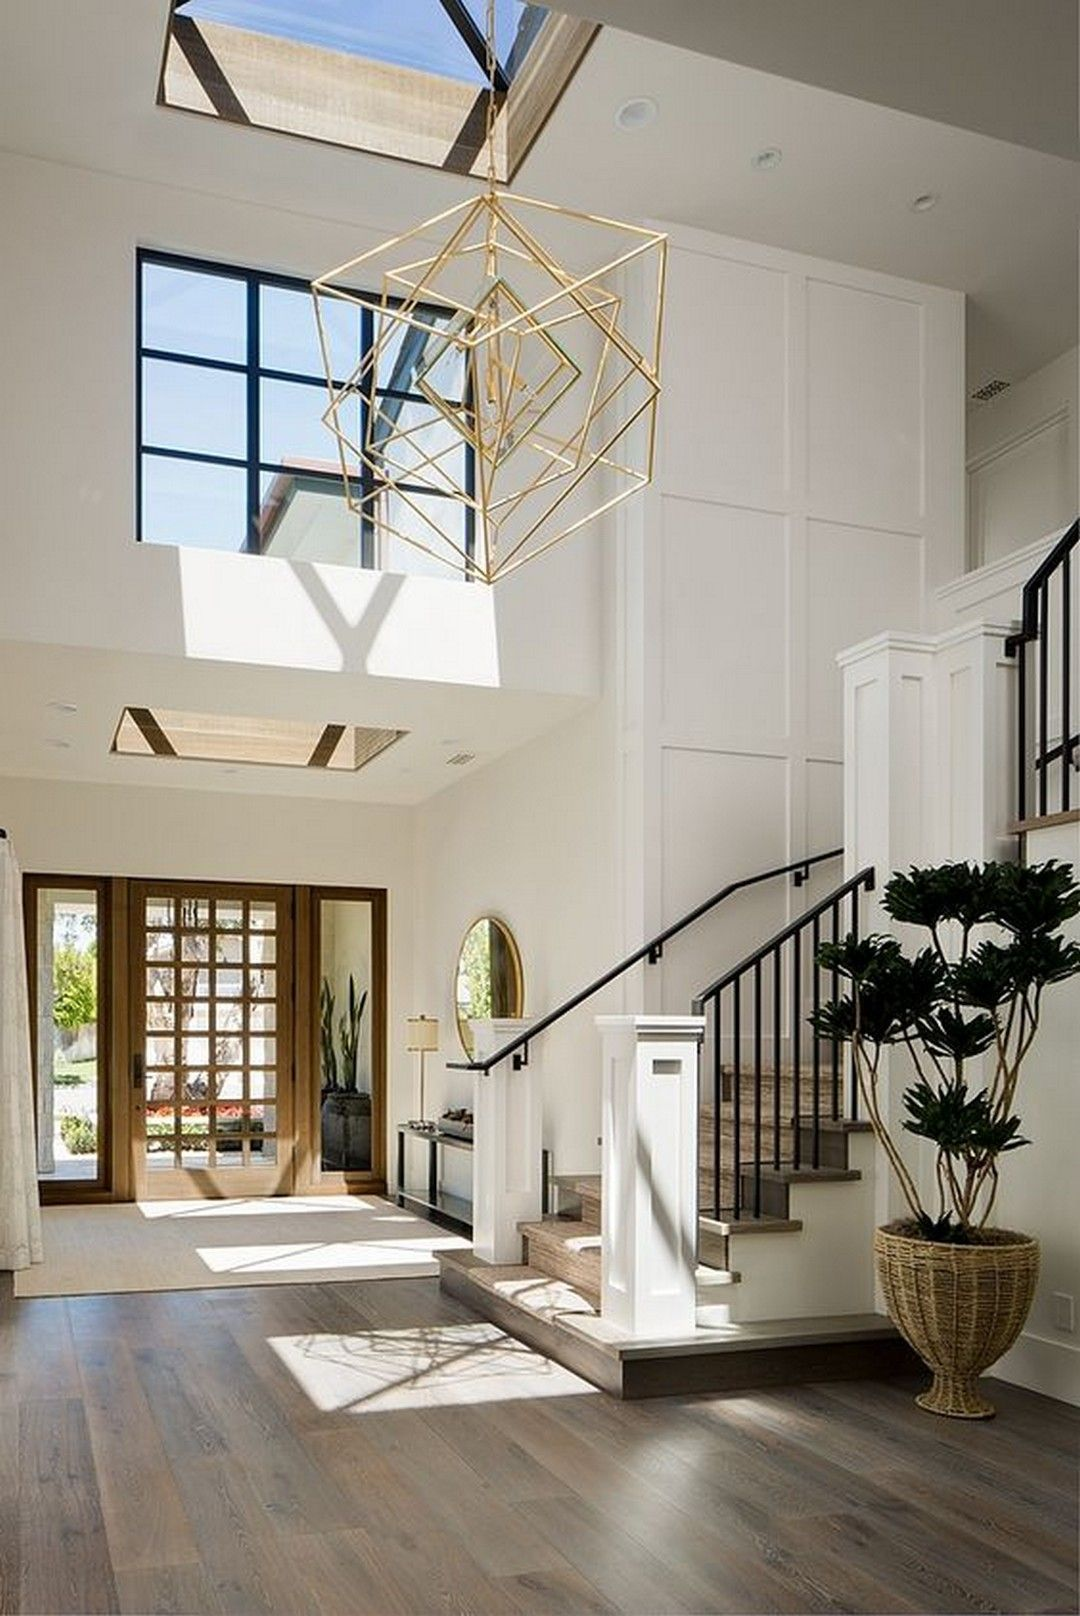 10 Beautiful And Elegant Pinterest Home Decor Ideas To Decorate